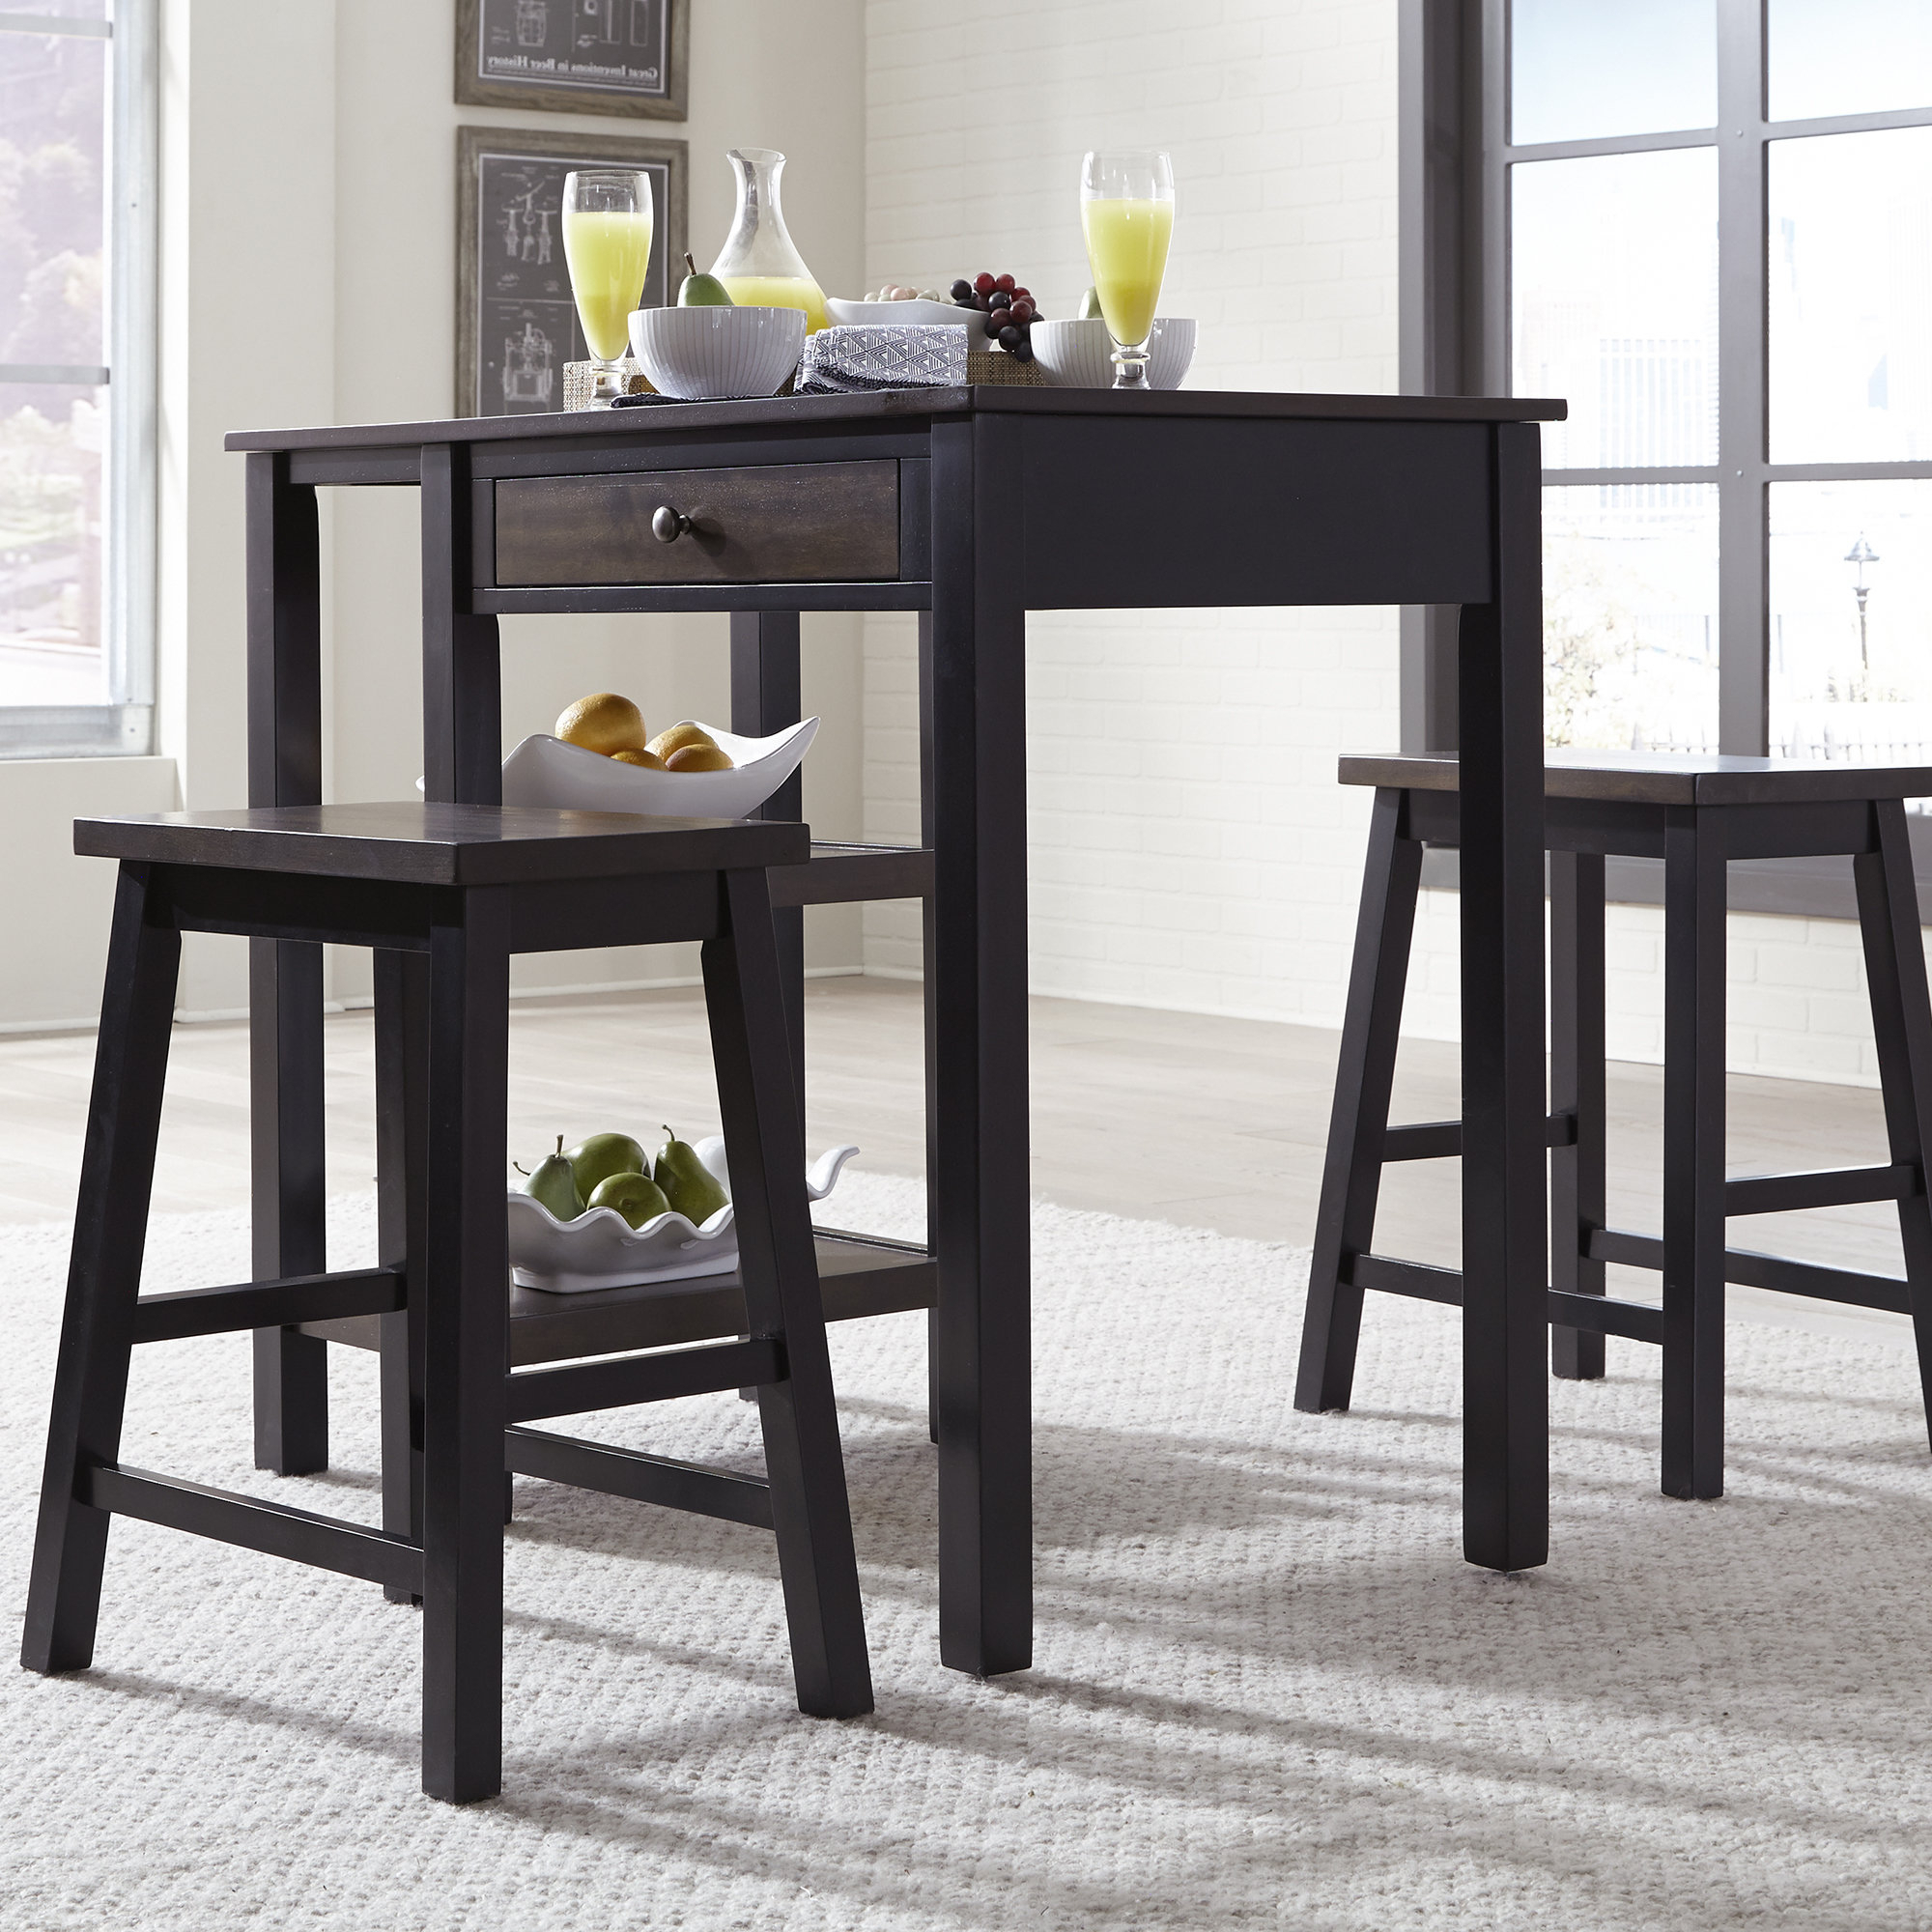 Most Up To Date Emmeline 5 Piece Breakfast Nook Dining Sets Pertaining To Winston Porter Swigart 3 Piece Breakfast Nook Dining Set (View 14 of 25)